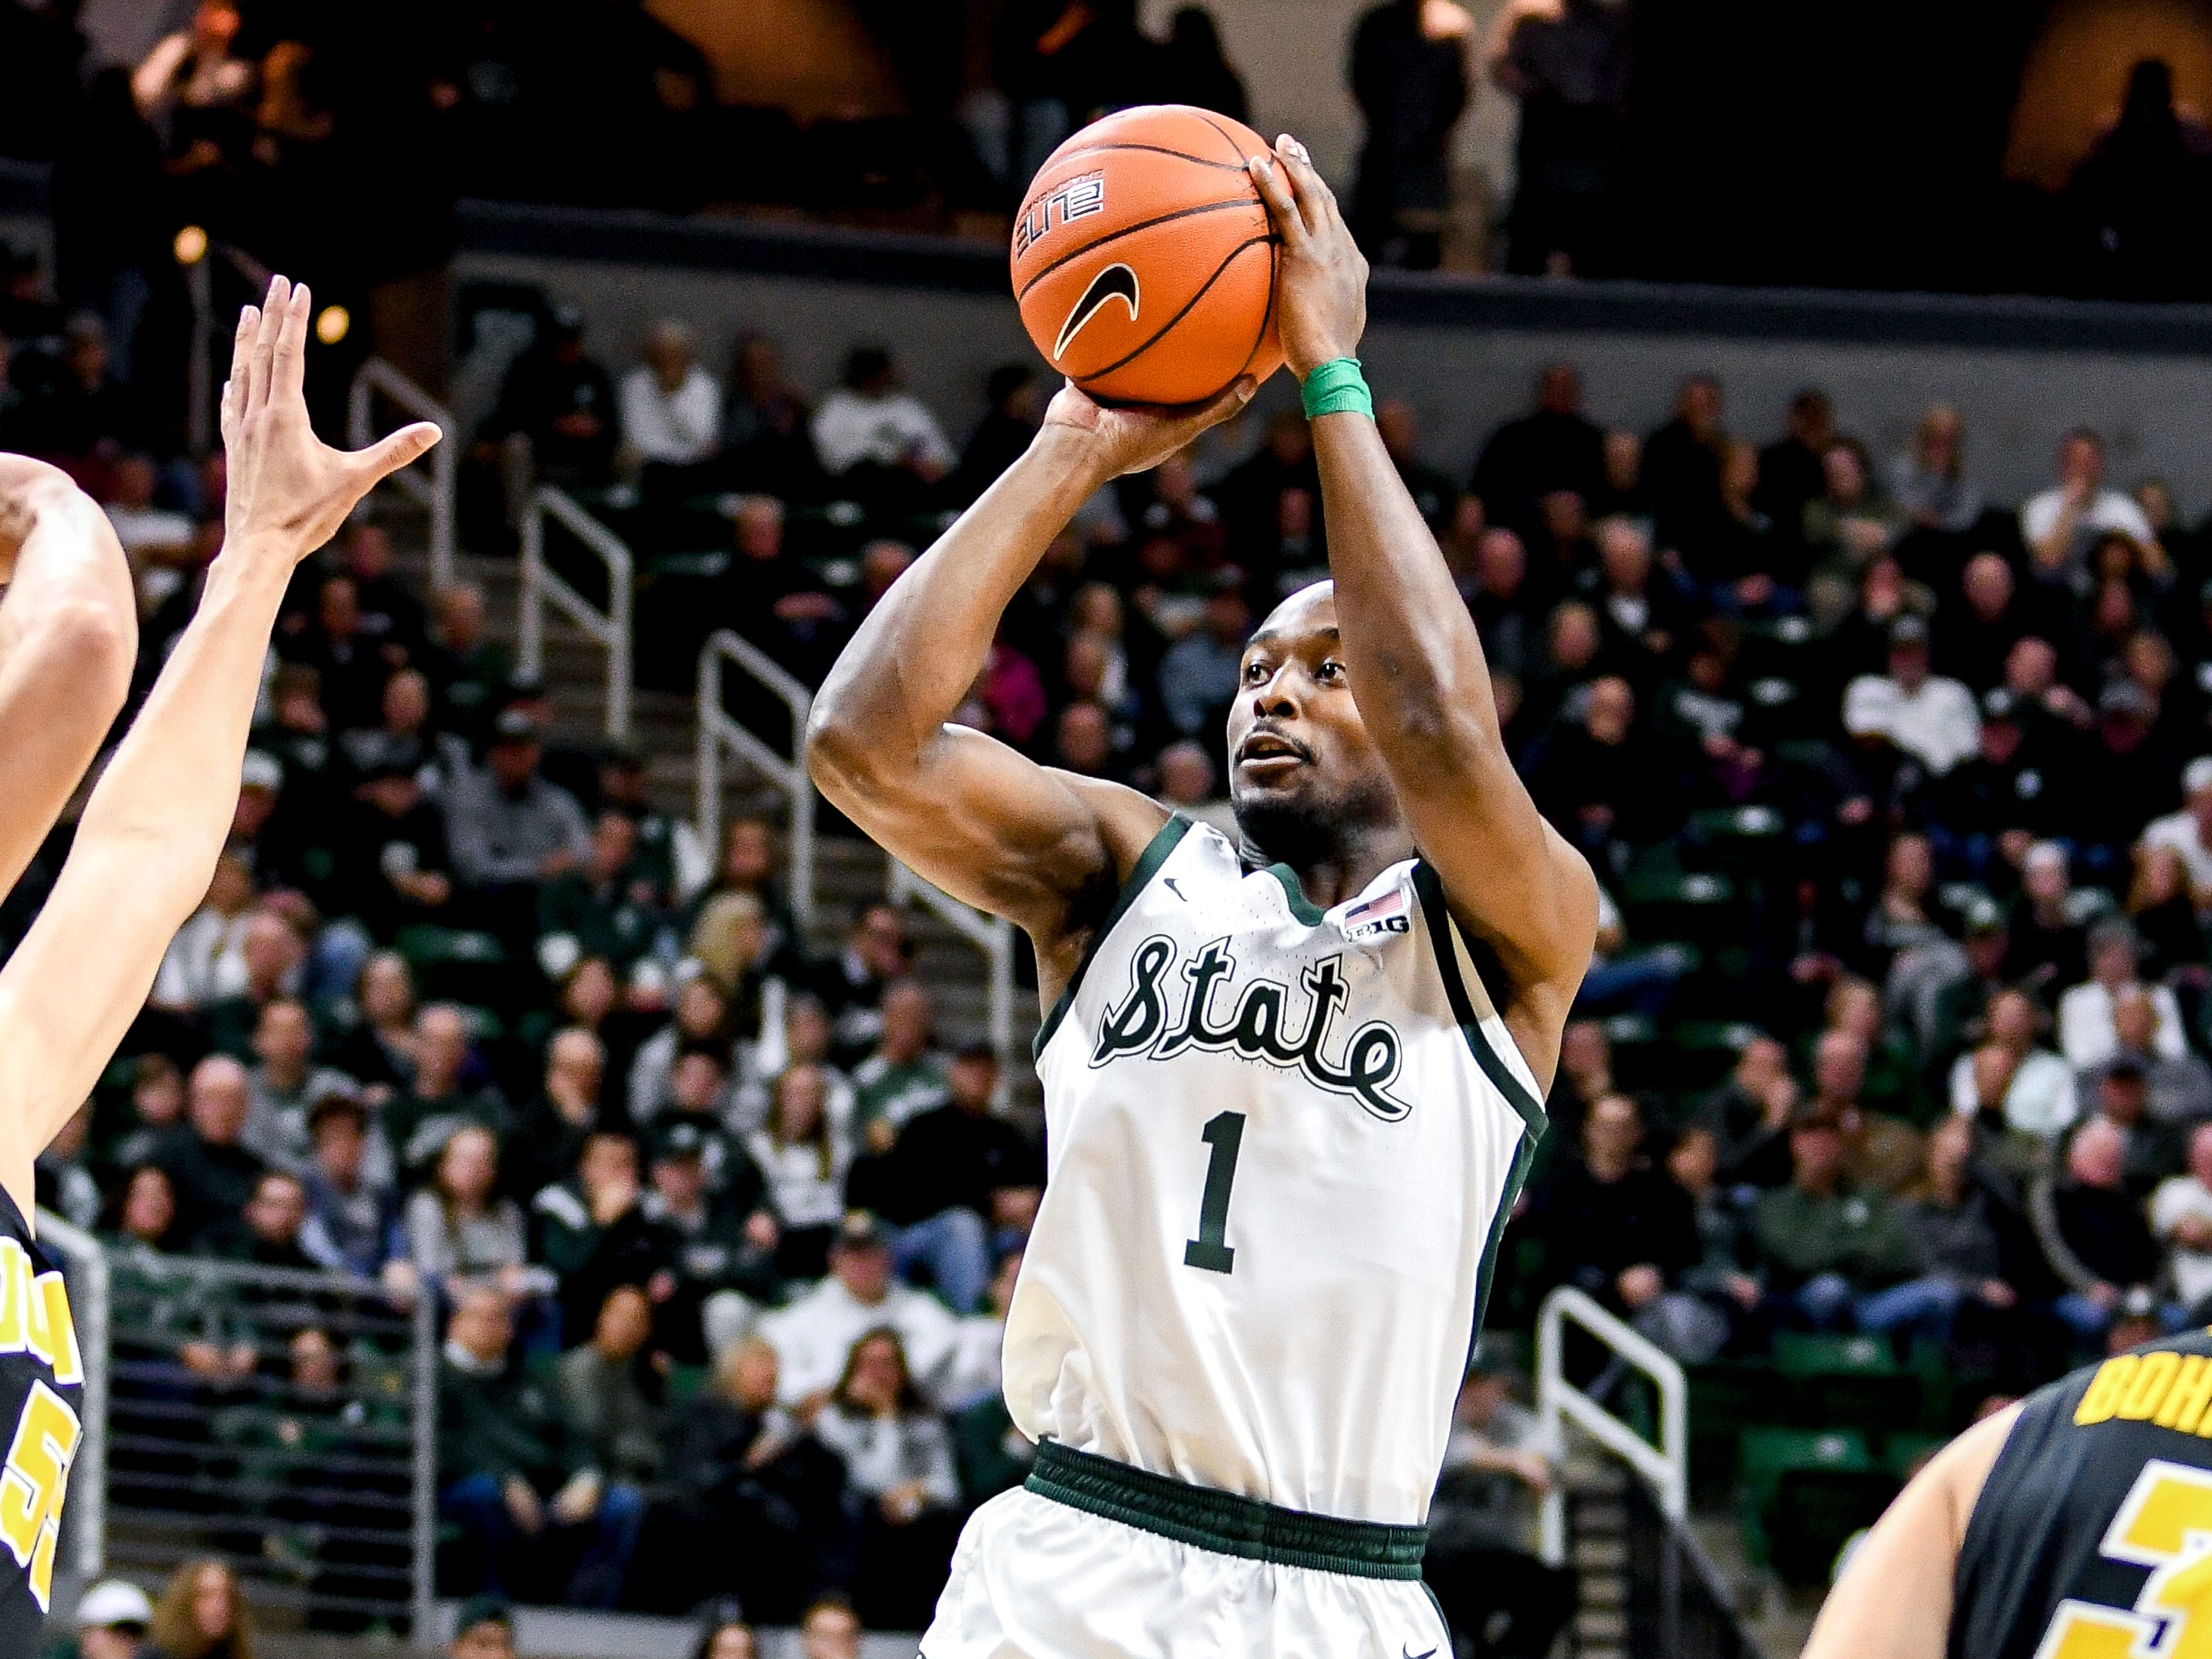 Michigan State's Joshua Langford shoots during the first half on Monday, Dec. 3, 2018, at the Breslin Center in East Lansing.